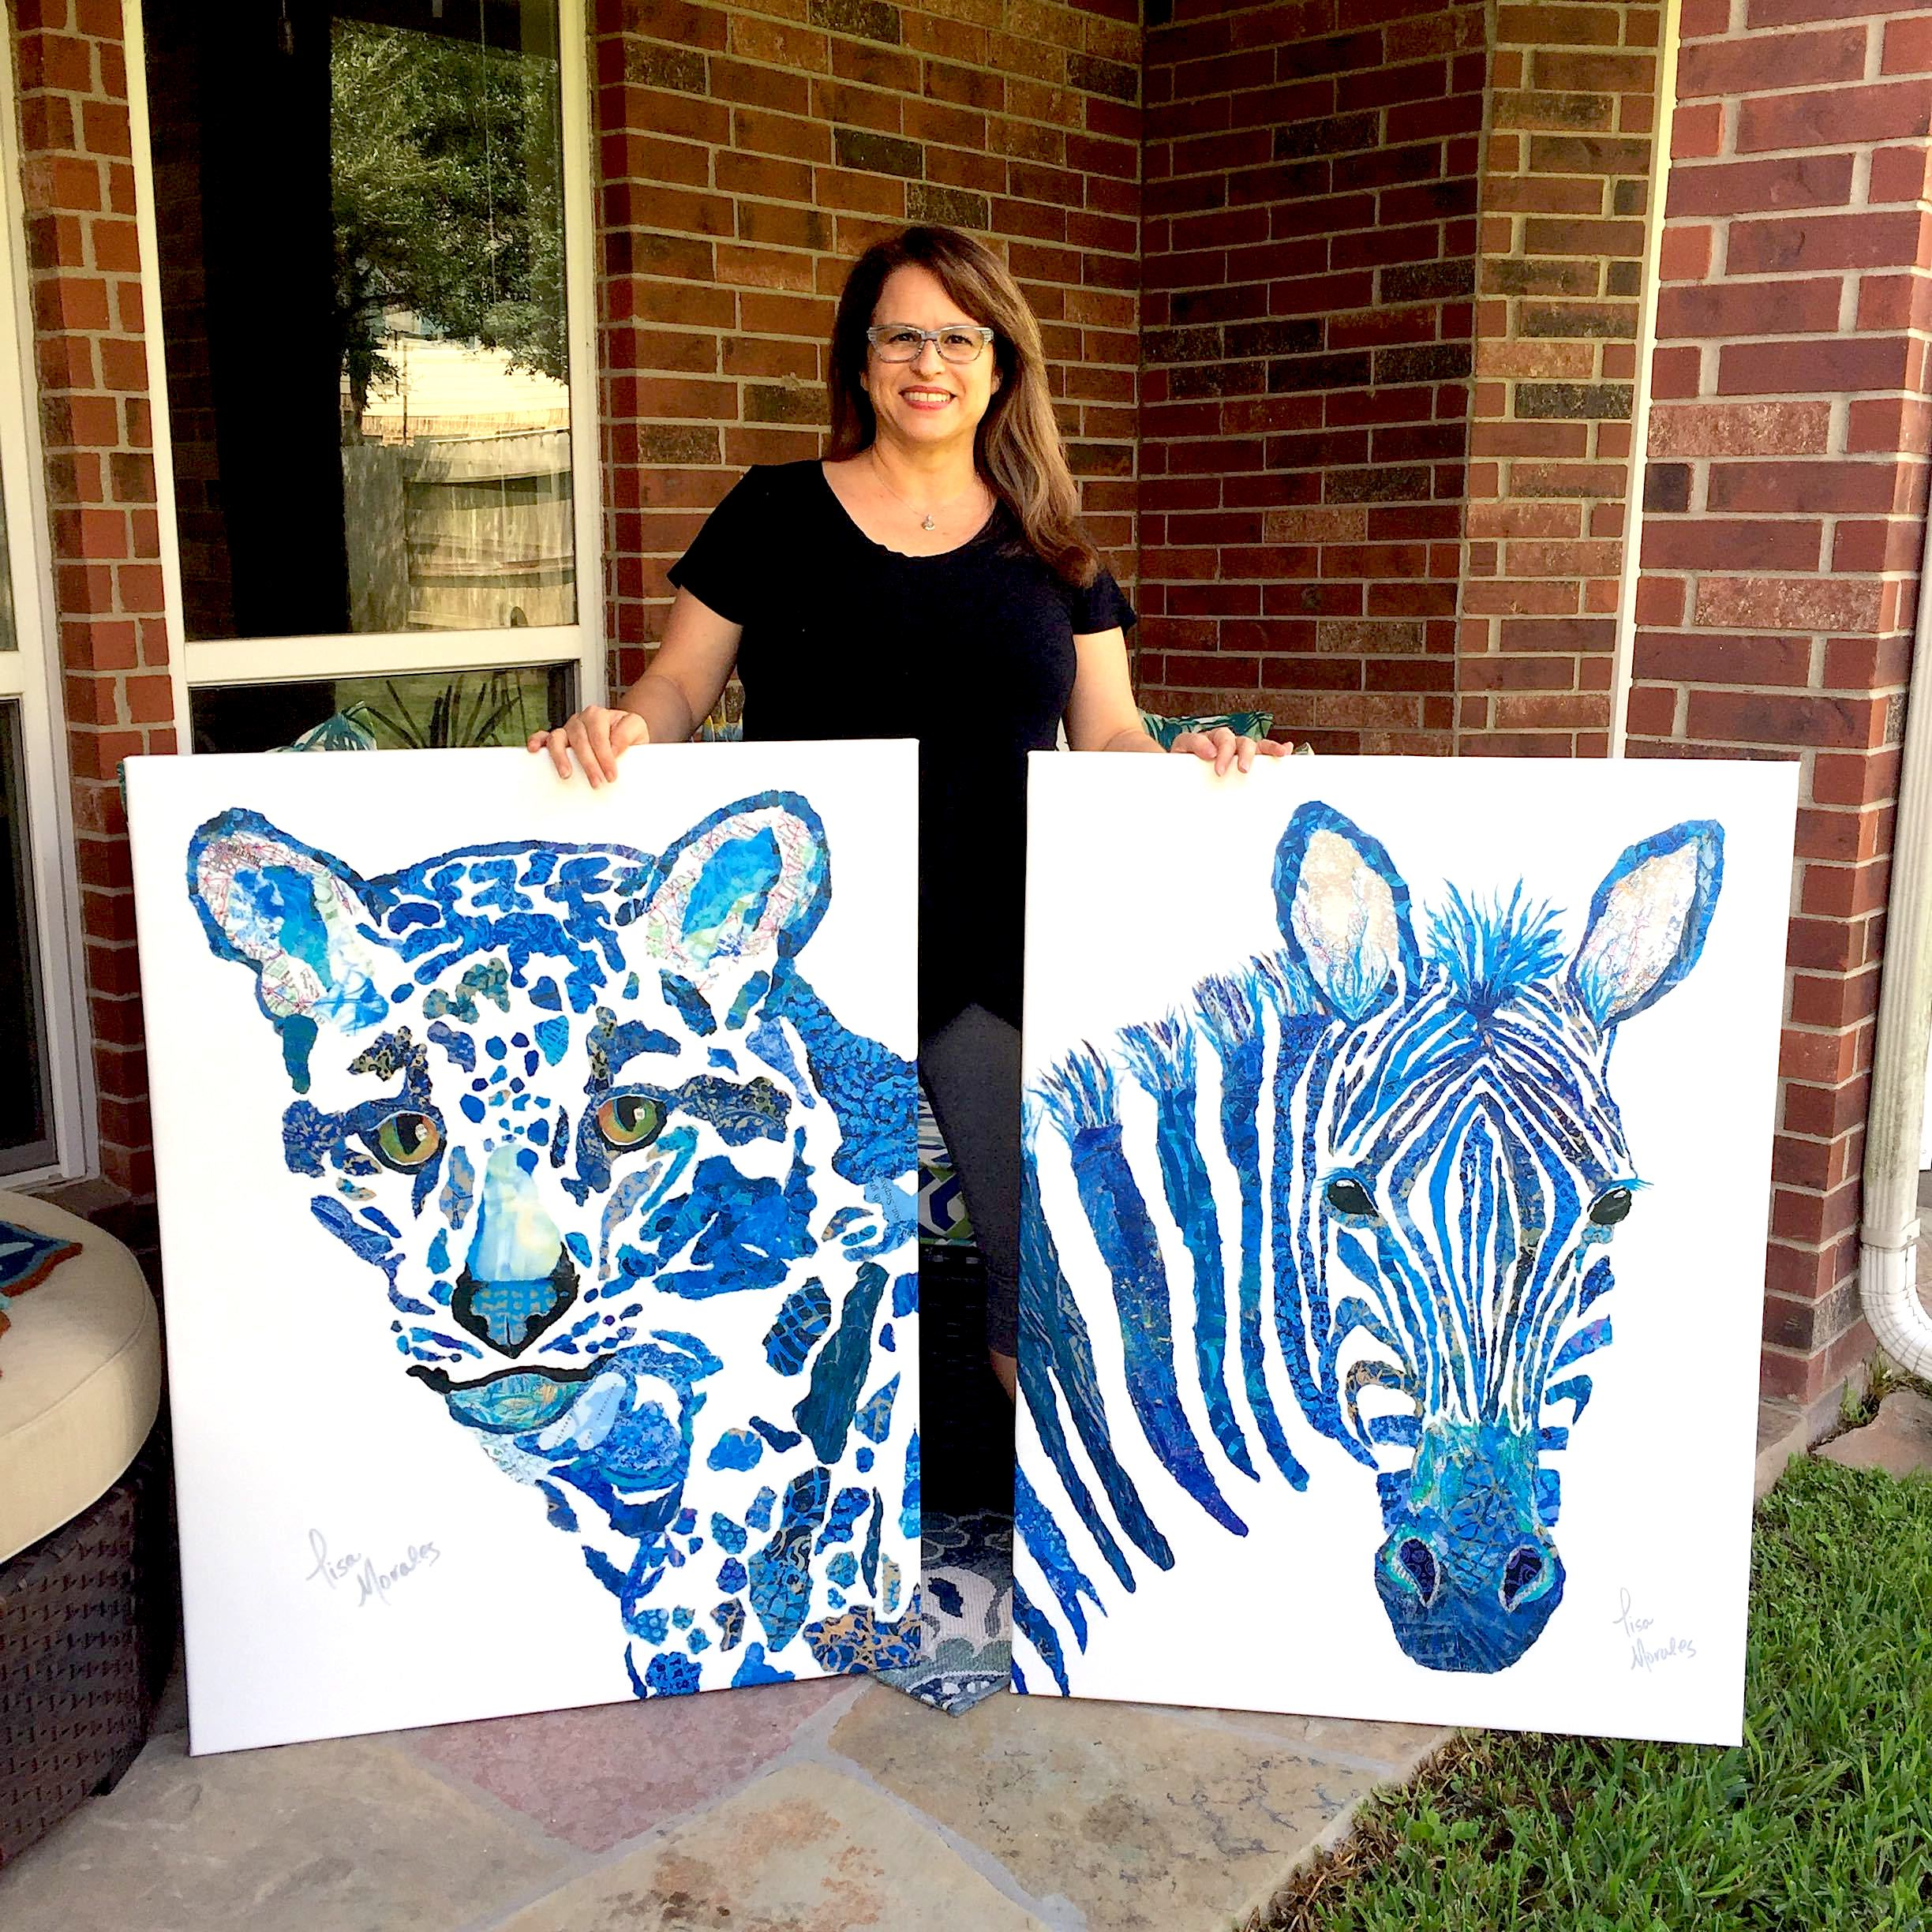 Collage art of a cheetah and zebra